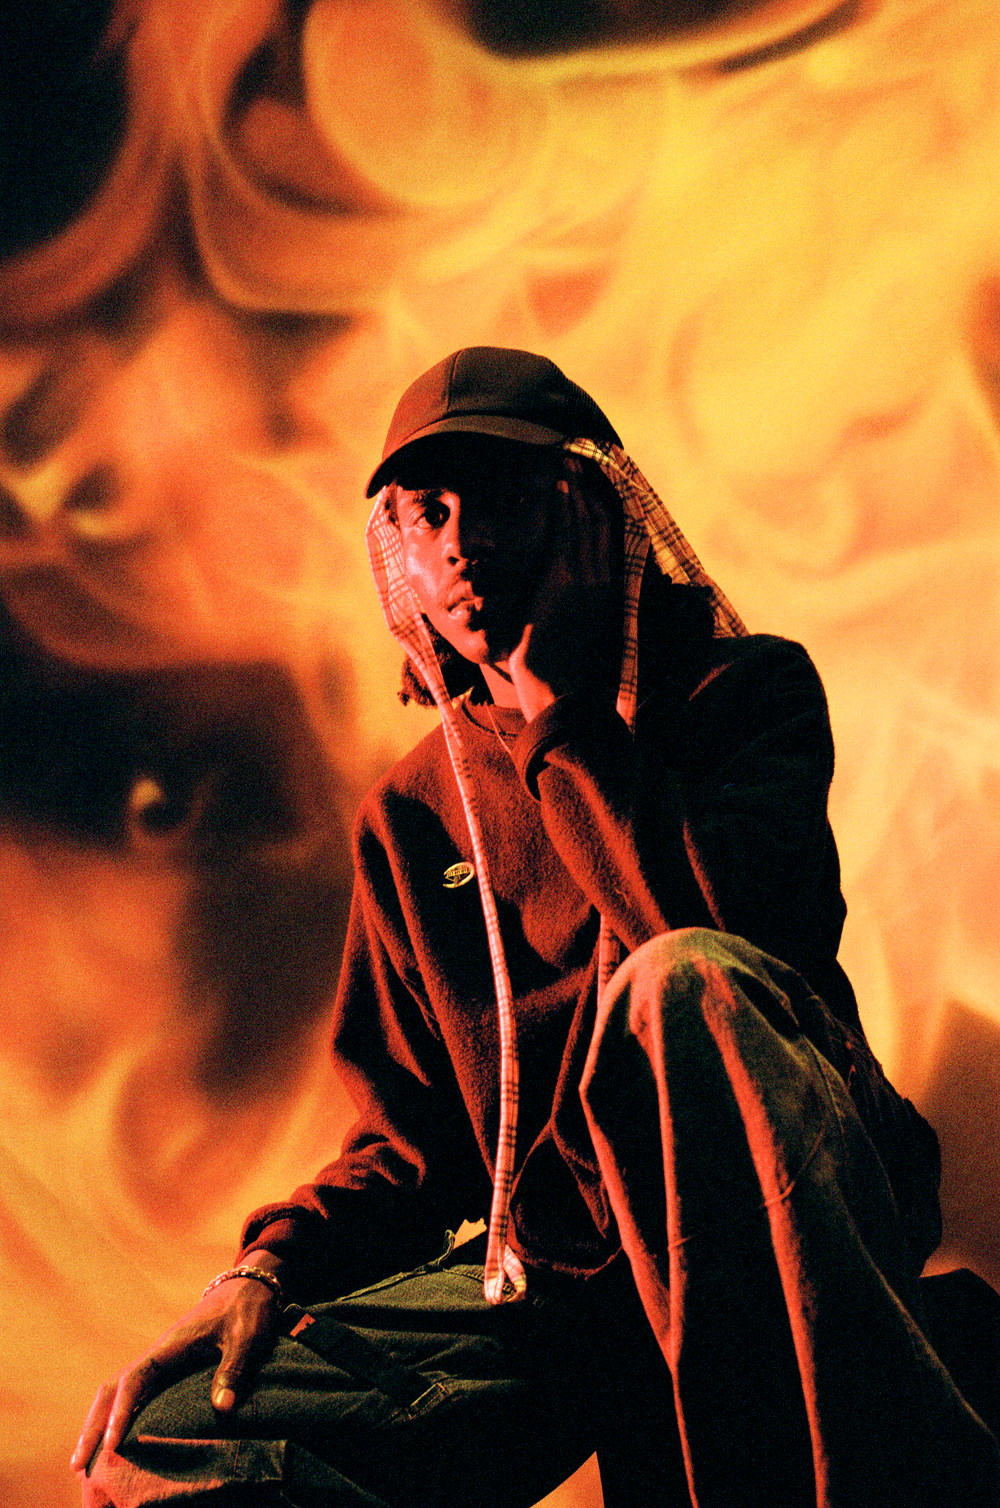 Blood Orange - Sunday, 28thProducer, multi-instrumentalist, composer, songwriter and vocalist Devonté Hynes returns with his fourth album as Blood Orange, Negro Swan, released on Domino Frida August 24, 2018. Hynes released Coastal Grooves in 2011, the first of three solo albums under the moniker Blood Orange. His last album, Freetown Sound, was released to critical acclaim in 2016, and saw Hynes defined as one of the foremost musical voices of his time, receiving comparisons to the likes of Kendrick Lamar and D'Angelo for his own searing and soothing personal document of life as a black man in America. He has collaborated with Solange Knowles, Skepta, fka twigs, Carly Rae Jepsen, A$AP Rocky, Charlotte Gainsbourg, Blondie, and many other artists.